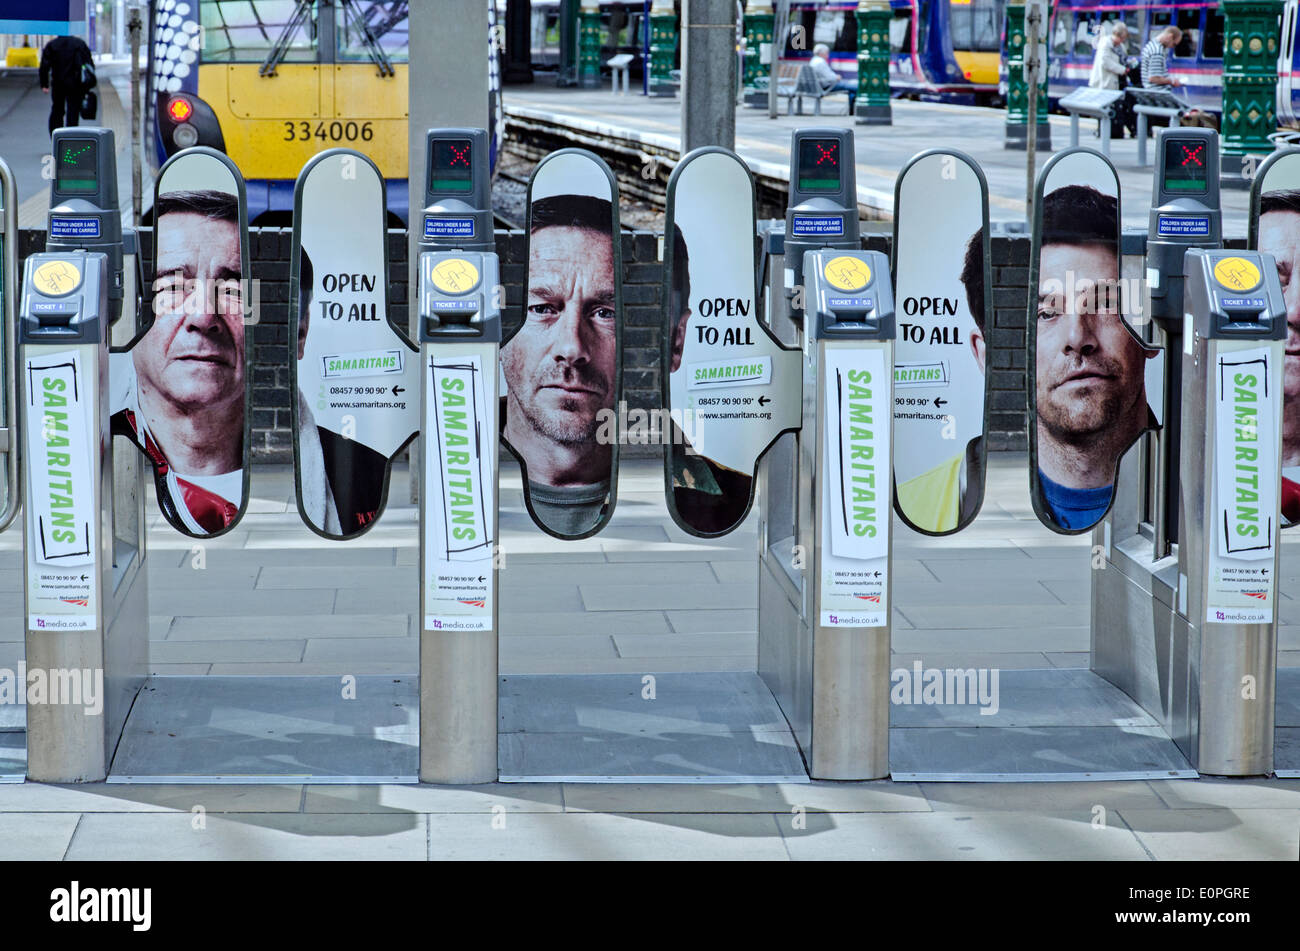 Adverts for the Samaritians charity on the barriers at Waverley Station in Edinburgh, Scotland, UK. - Stock Image